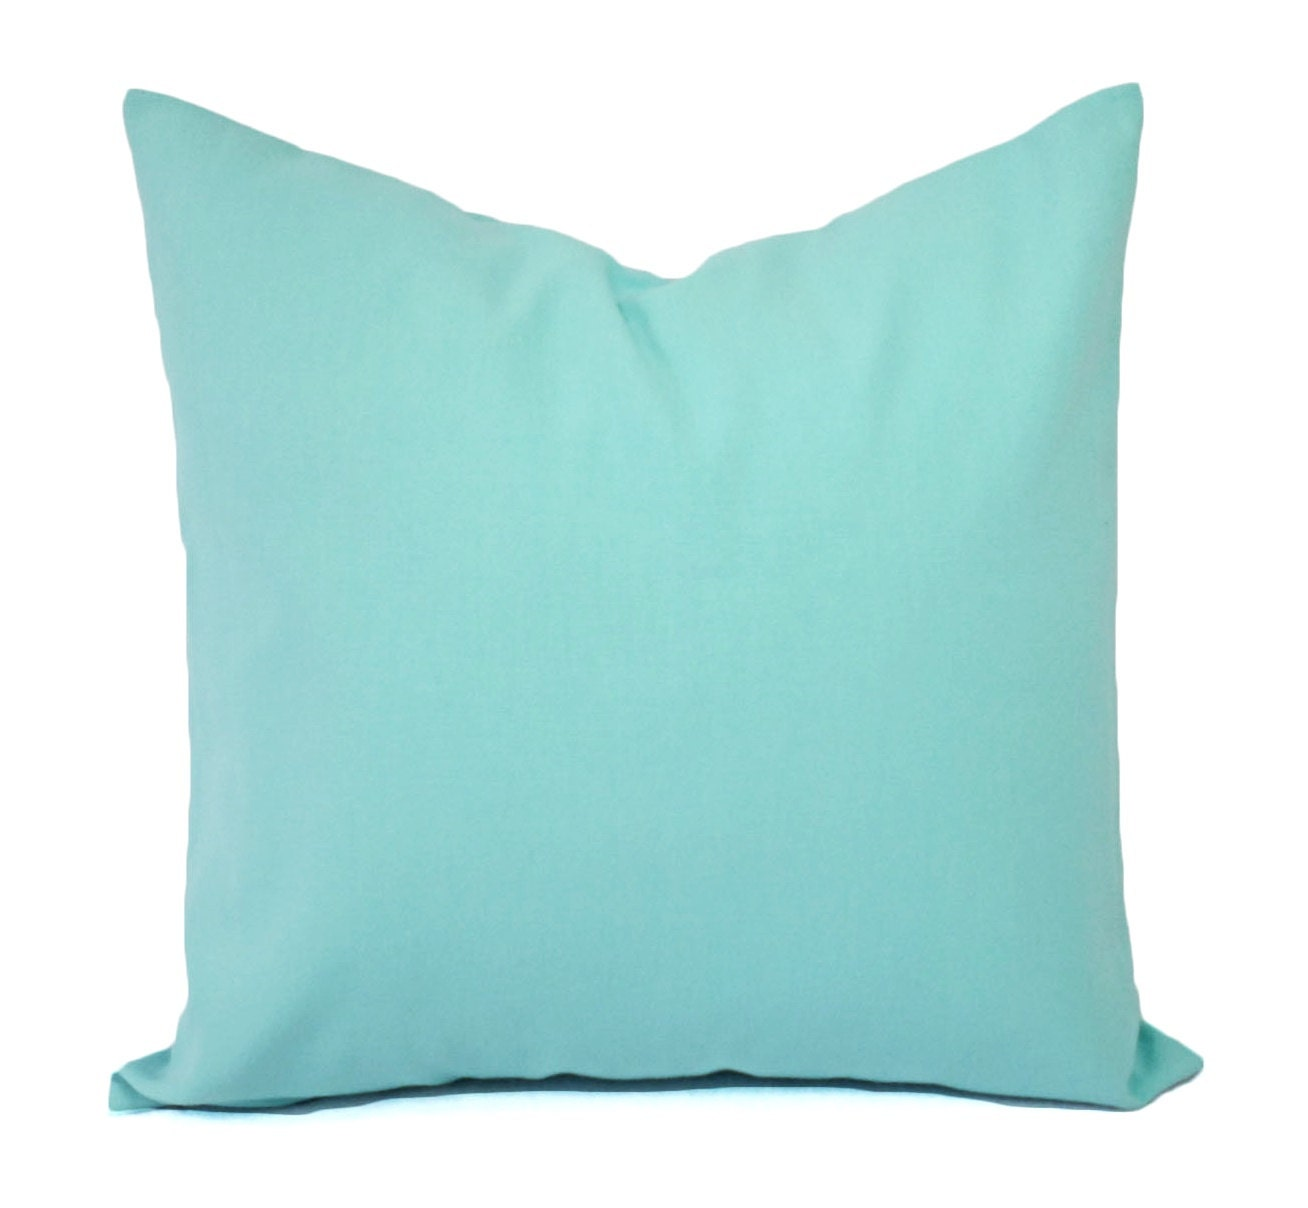 Decorative Pillows For Blue Couch : Two Aqua Pillow Covers Solid Teal Throw Pillows Aqua Couch